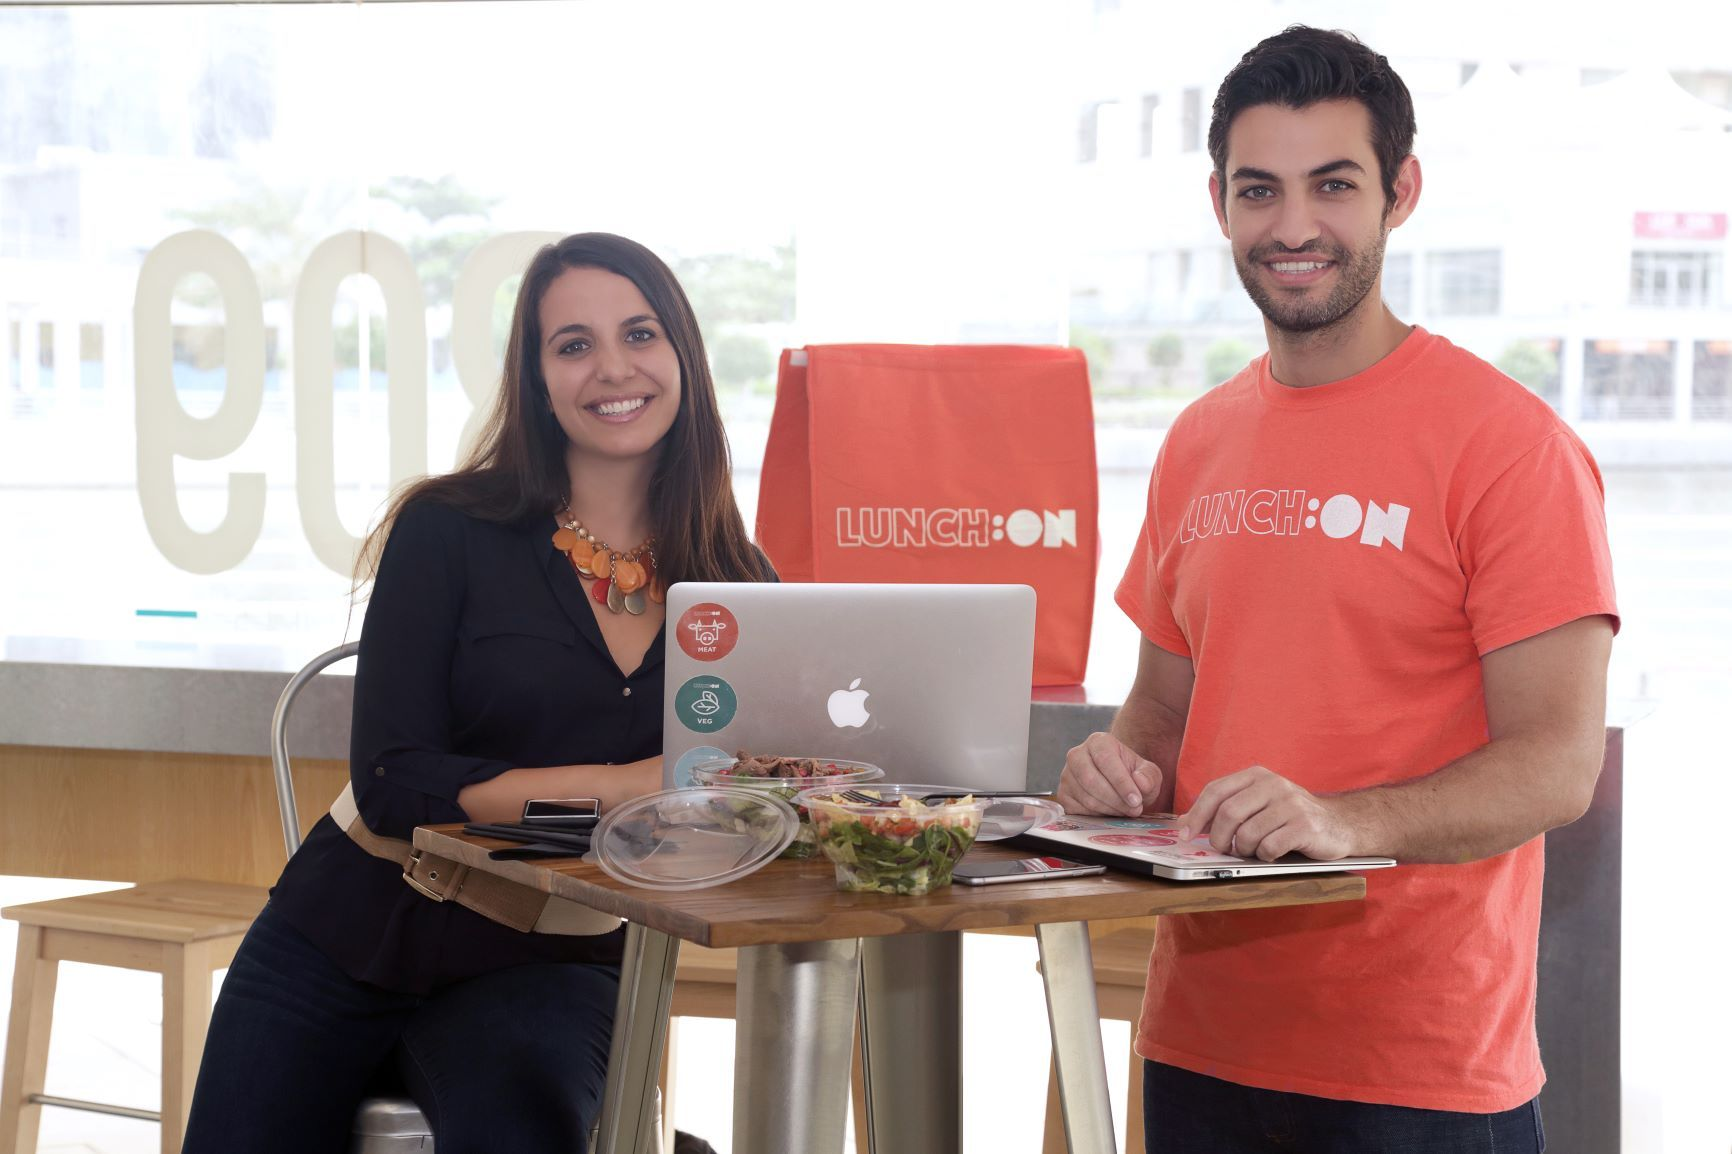 LUNCH:ON closes $3m Series A round